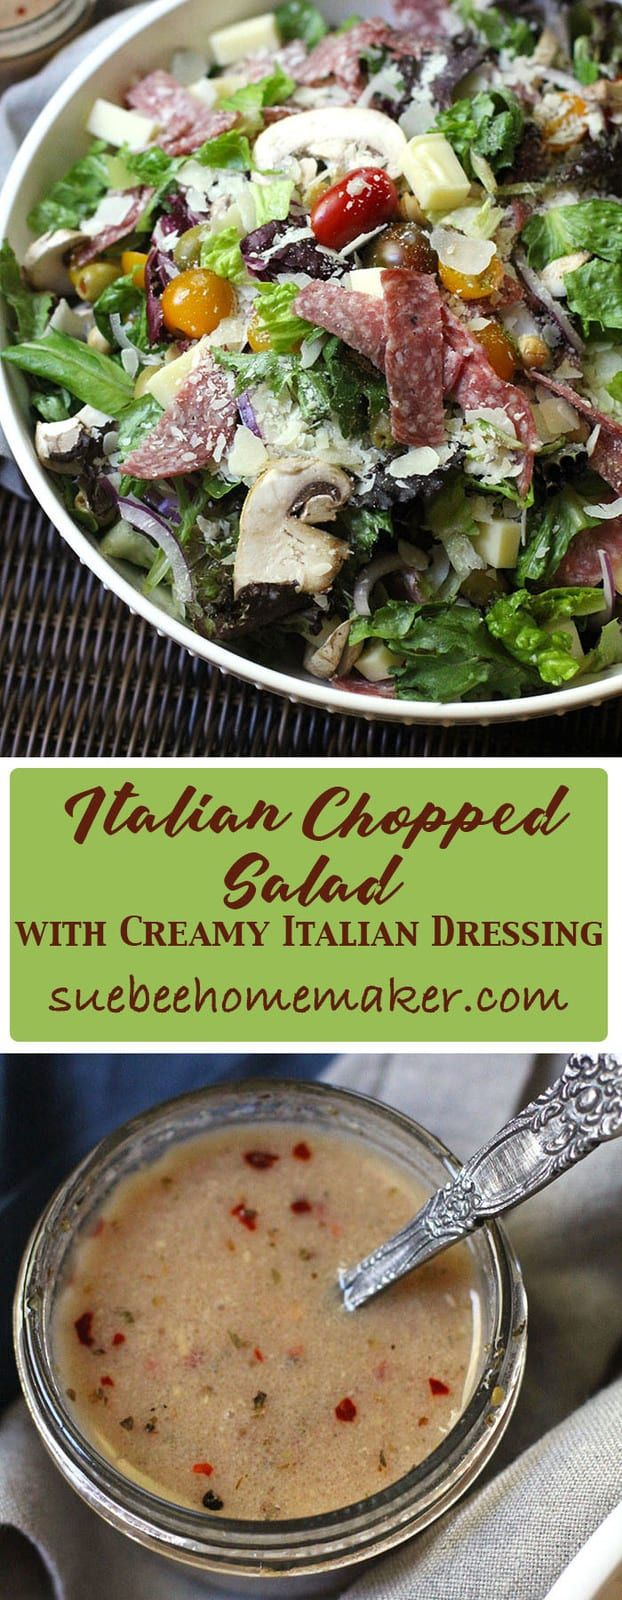 Making a large interesting Italian Chopped Salad at the start of the week will encourage healthy eating all week long. My Creamy Italian Dressing is a must!